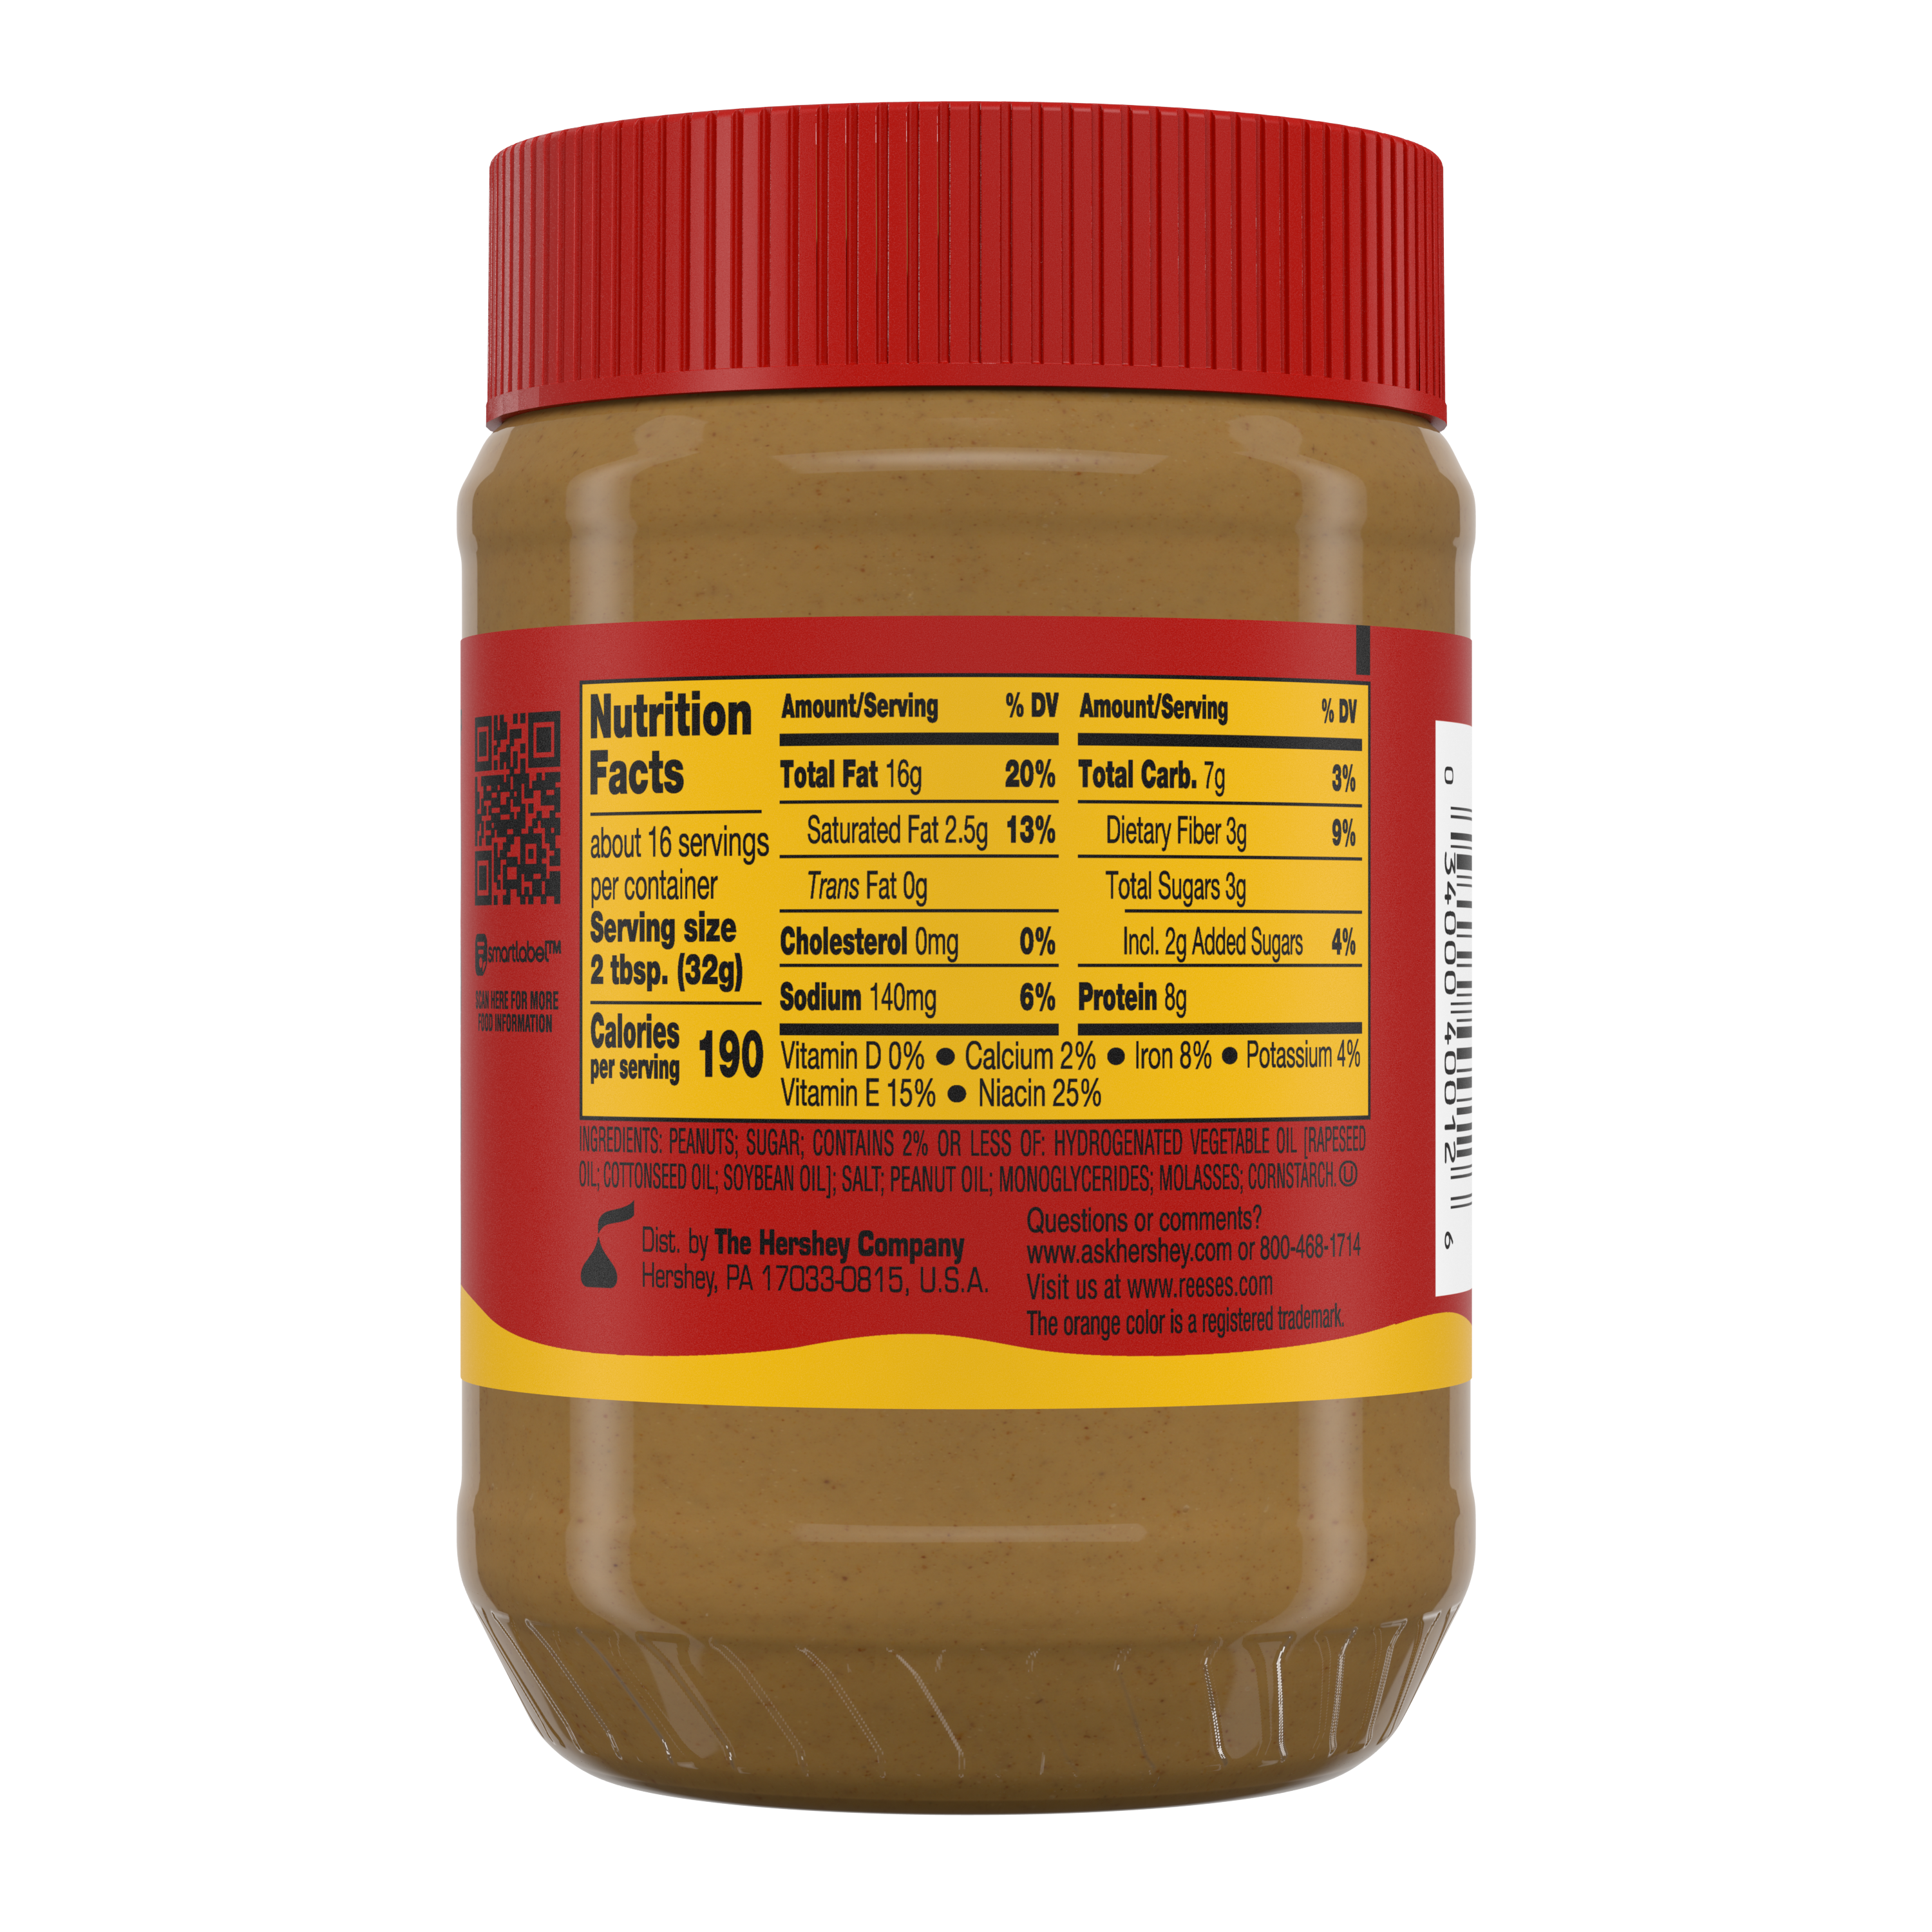 REESE'S Creamy Peanut Butter, 18 oz jar - Back of Package